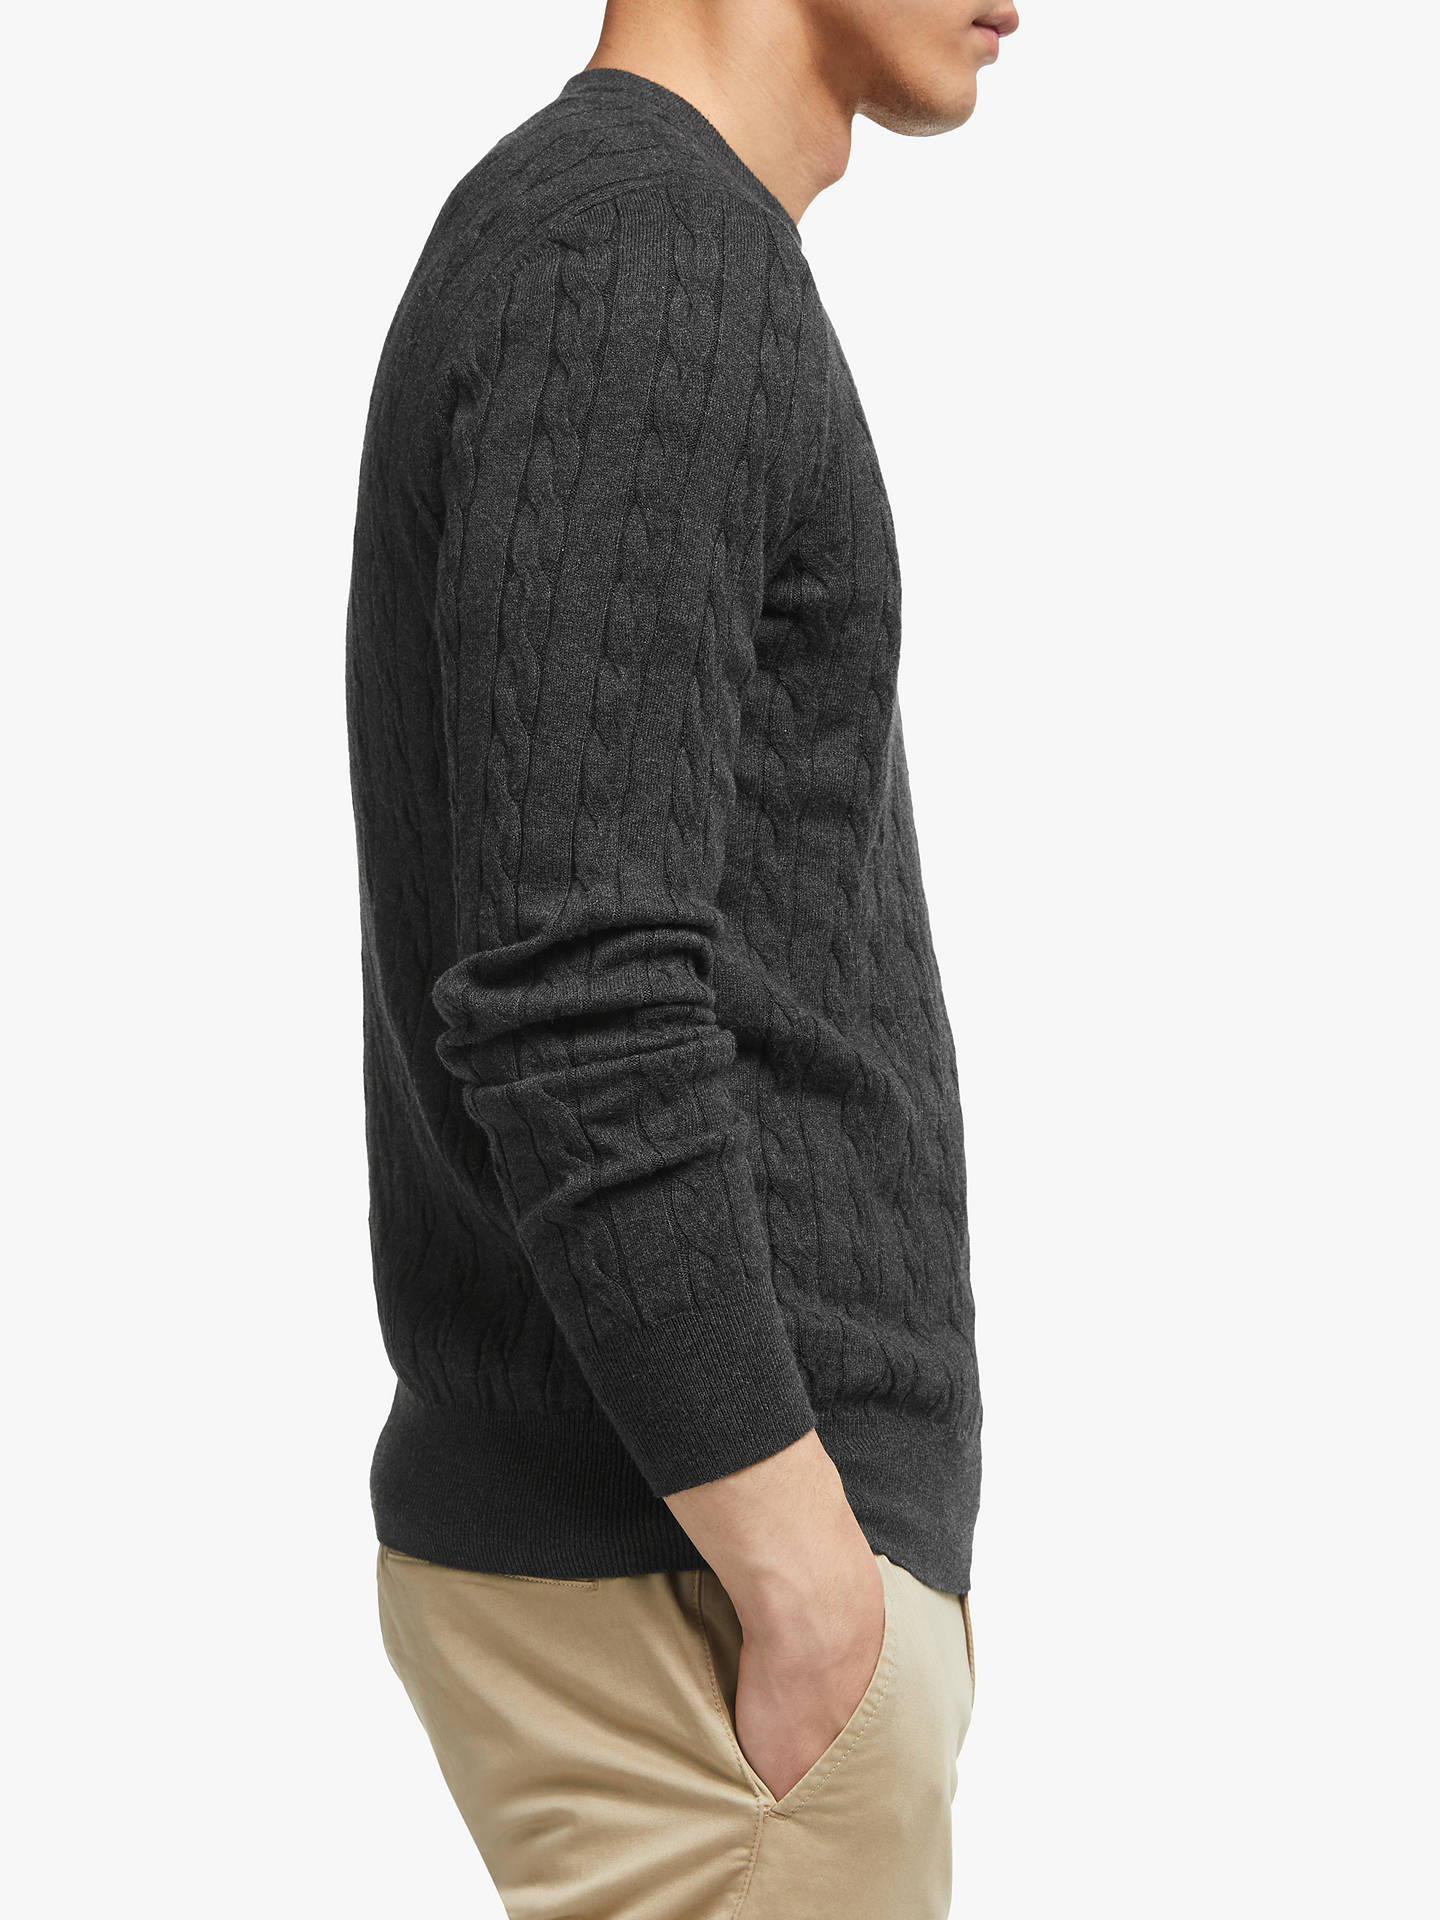 Buy John Lewis & Partners Cotton Cashmere Cable Knit Jumper, Charcoal, XS Online at johnlewis.com